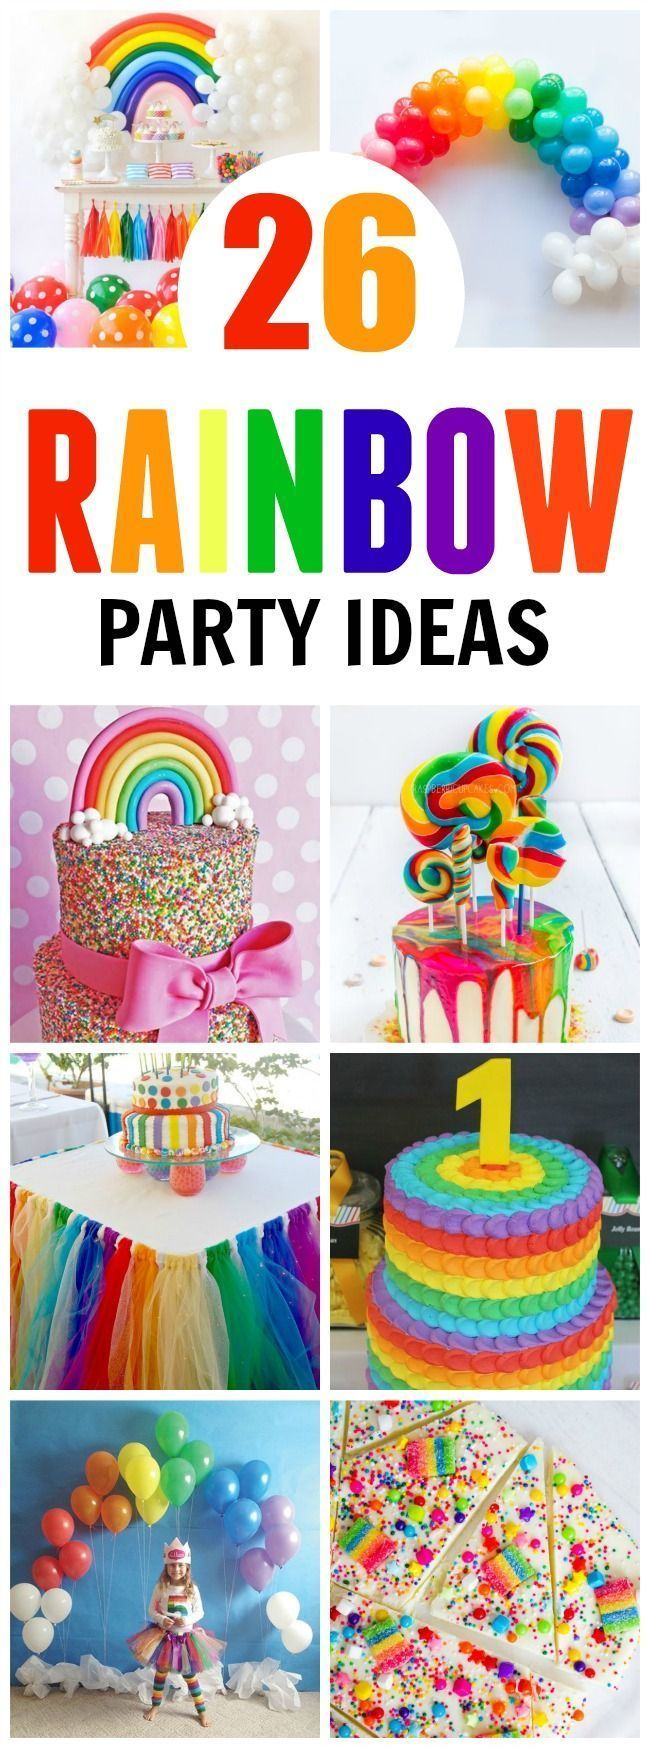 26 Rainbow Party Ideas featured on Pretty My Party